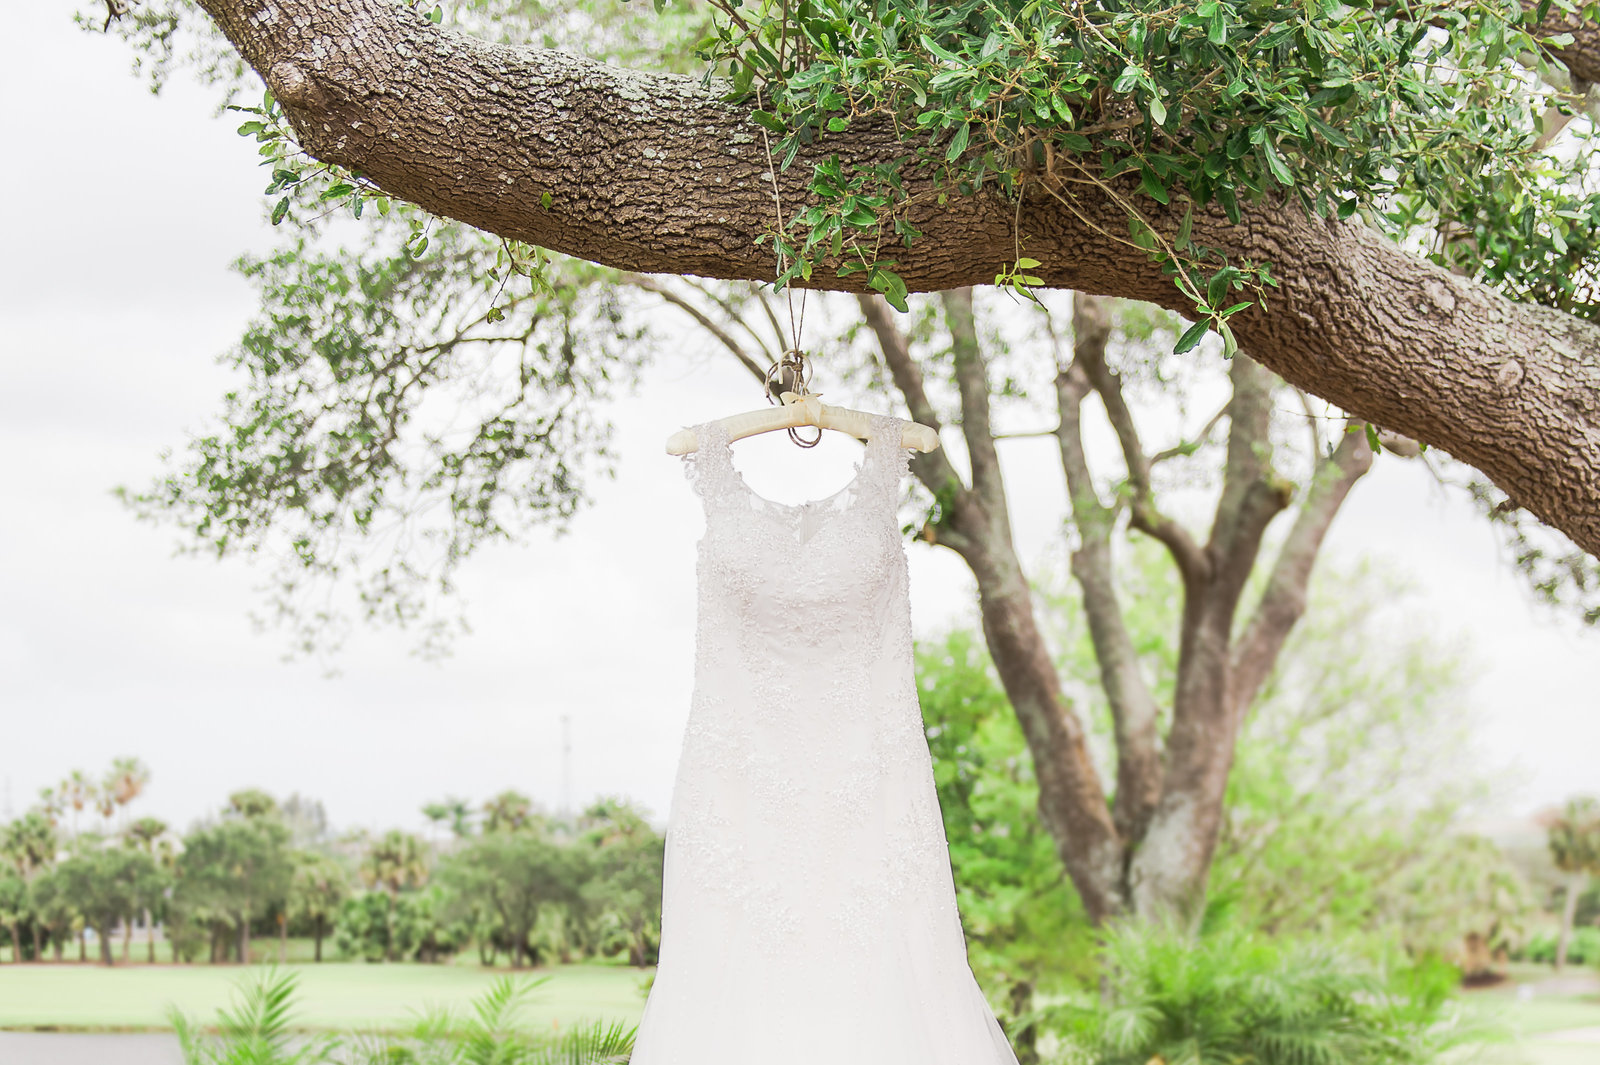 Rustic Wedding Gown - Myacoo Country Club Wedding - Palm Beach Wedding Photography by Palm Beach Photography, Inc.